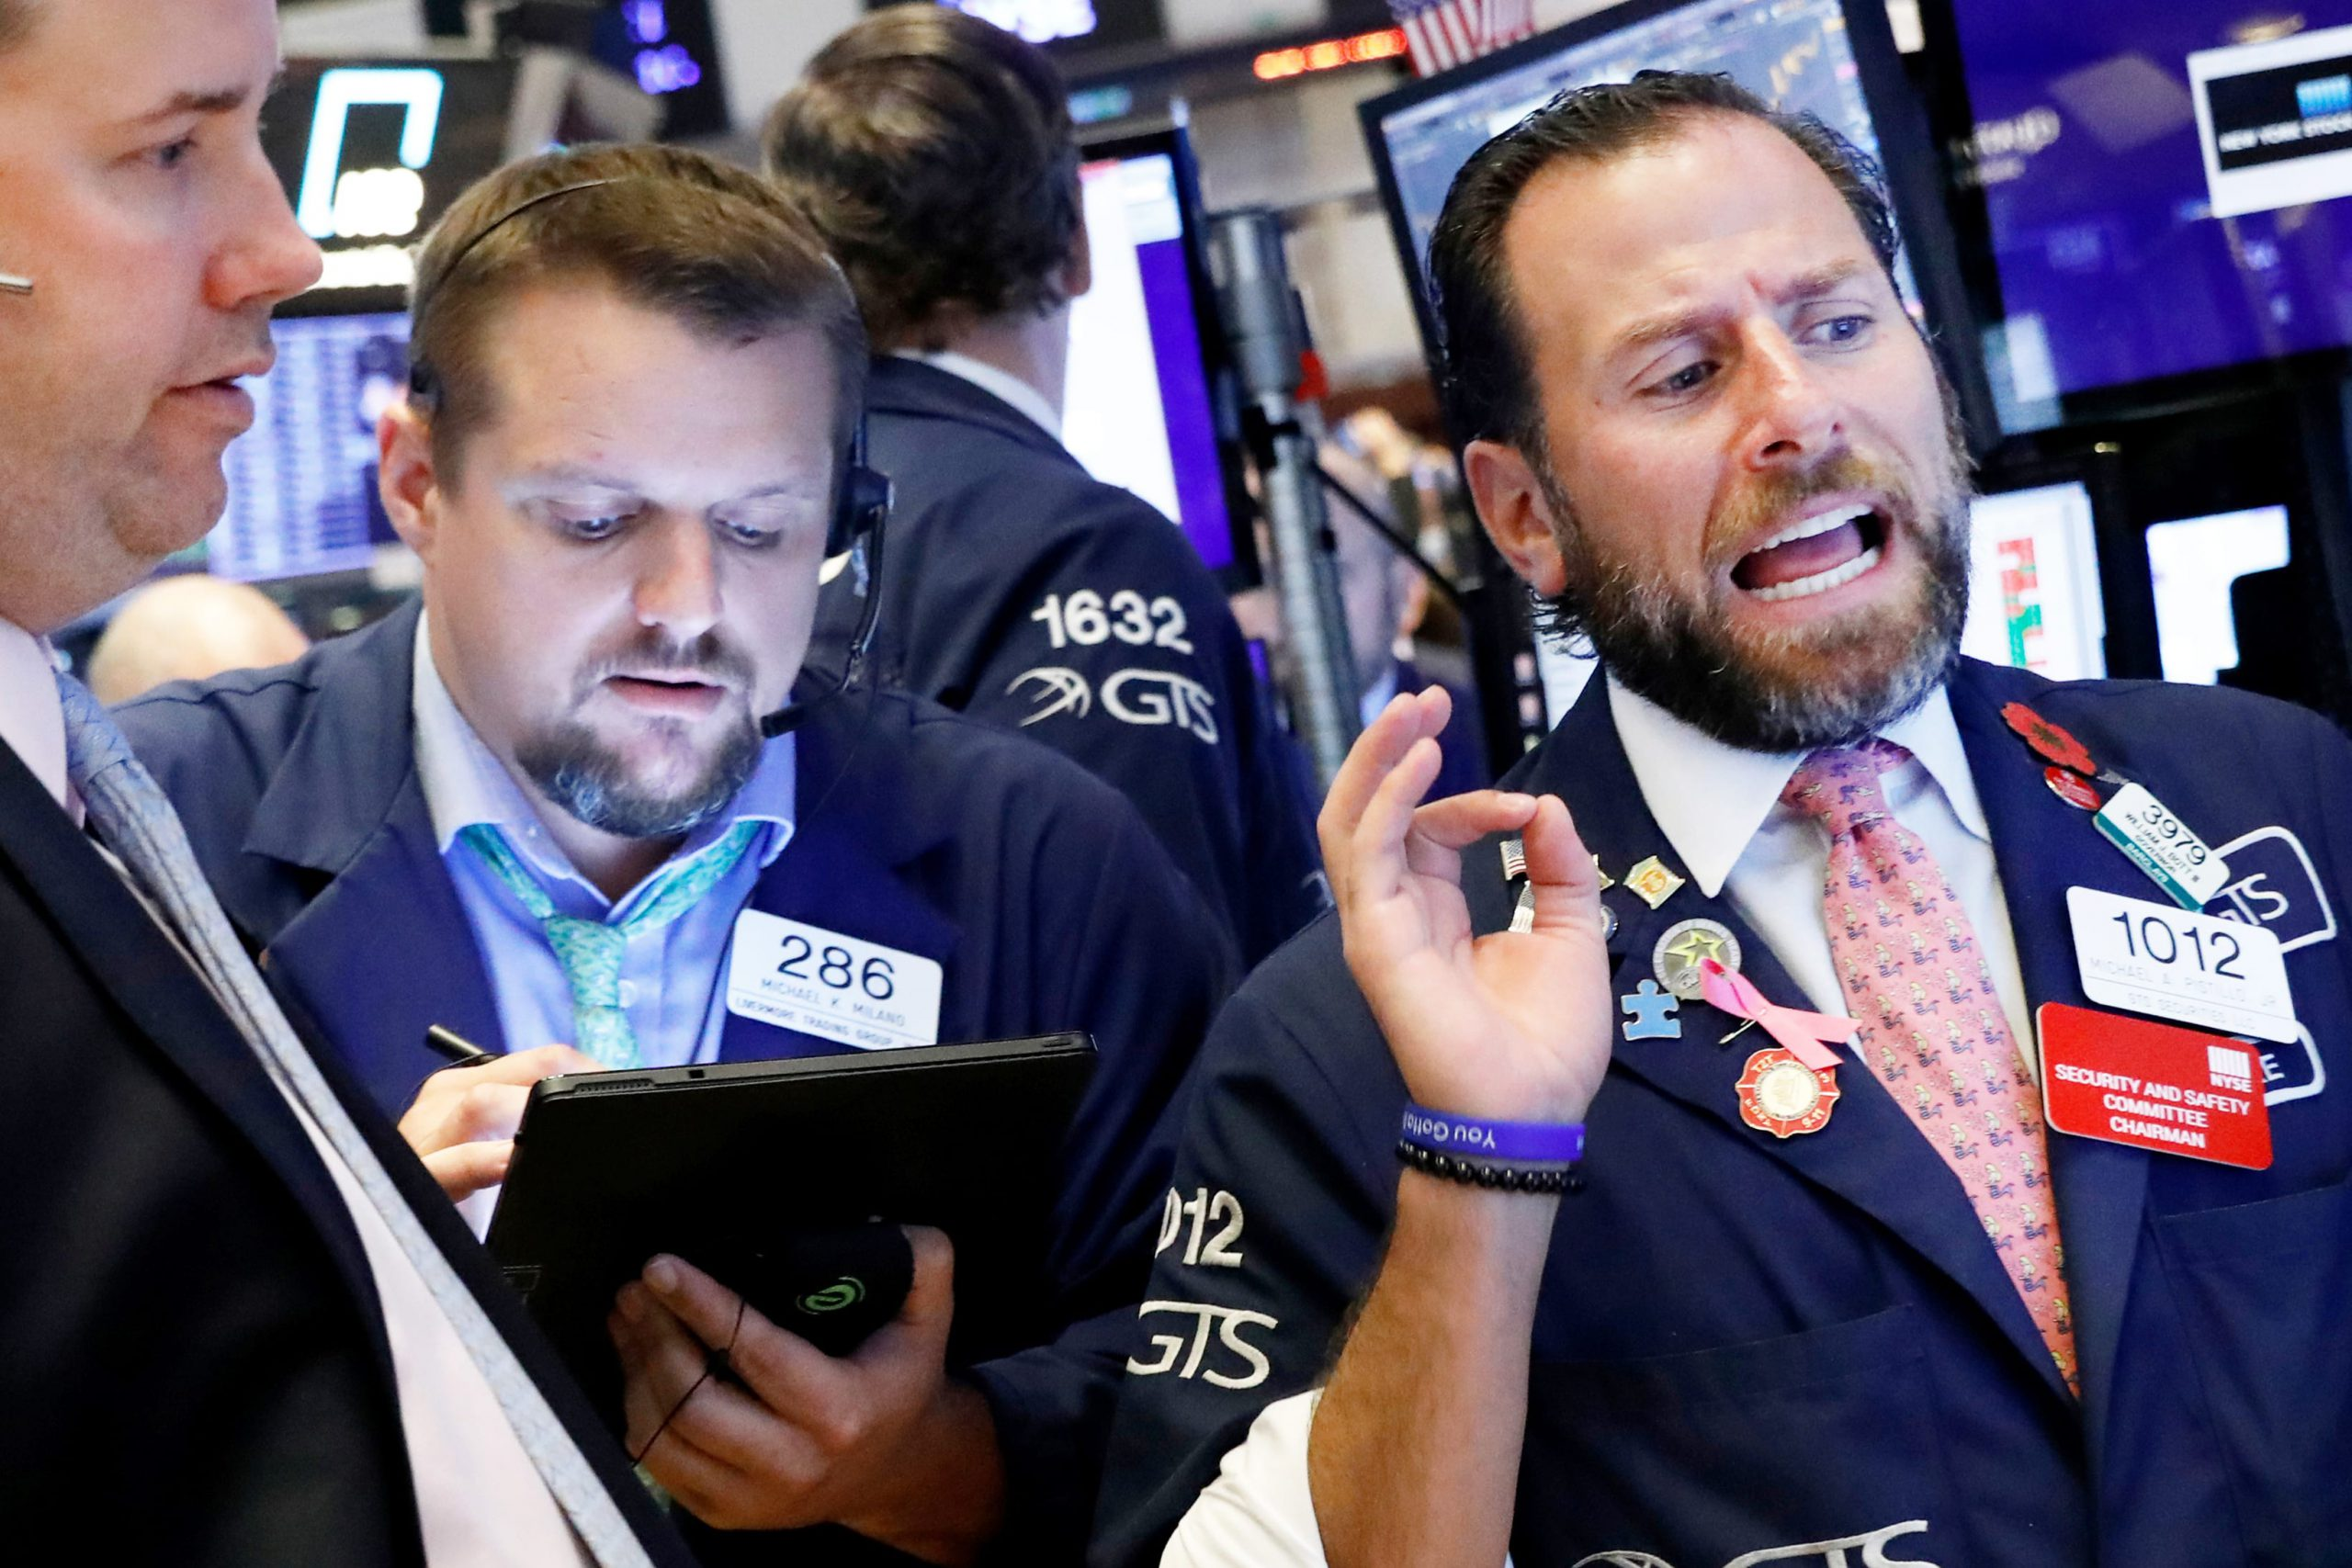 Path is clear for a year-end rally with key hurdles like the trade war removed